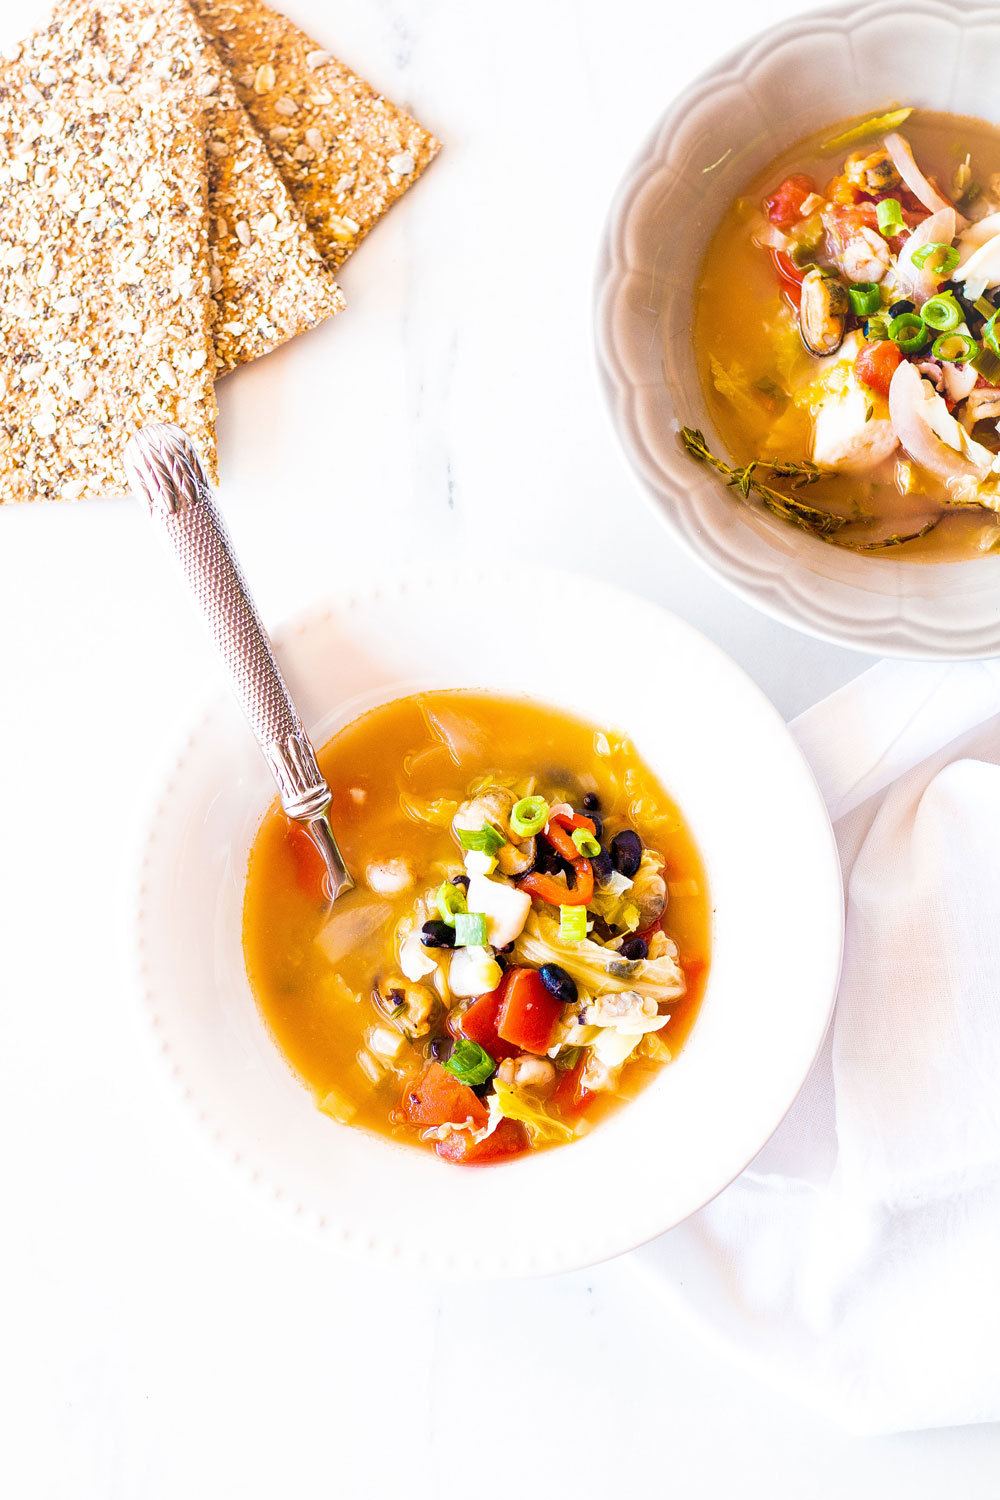 Cozy up this autumn with this rustic vegetable & seafood soup. A hearty and nourishing soup recipe that is quick to impress and incredibly easy to make! https://www.spotebi.com/recipes/rustic-vegetable-seafood-soup-recipe/